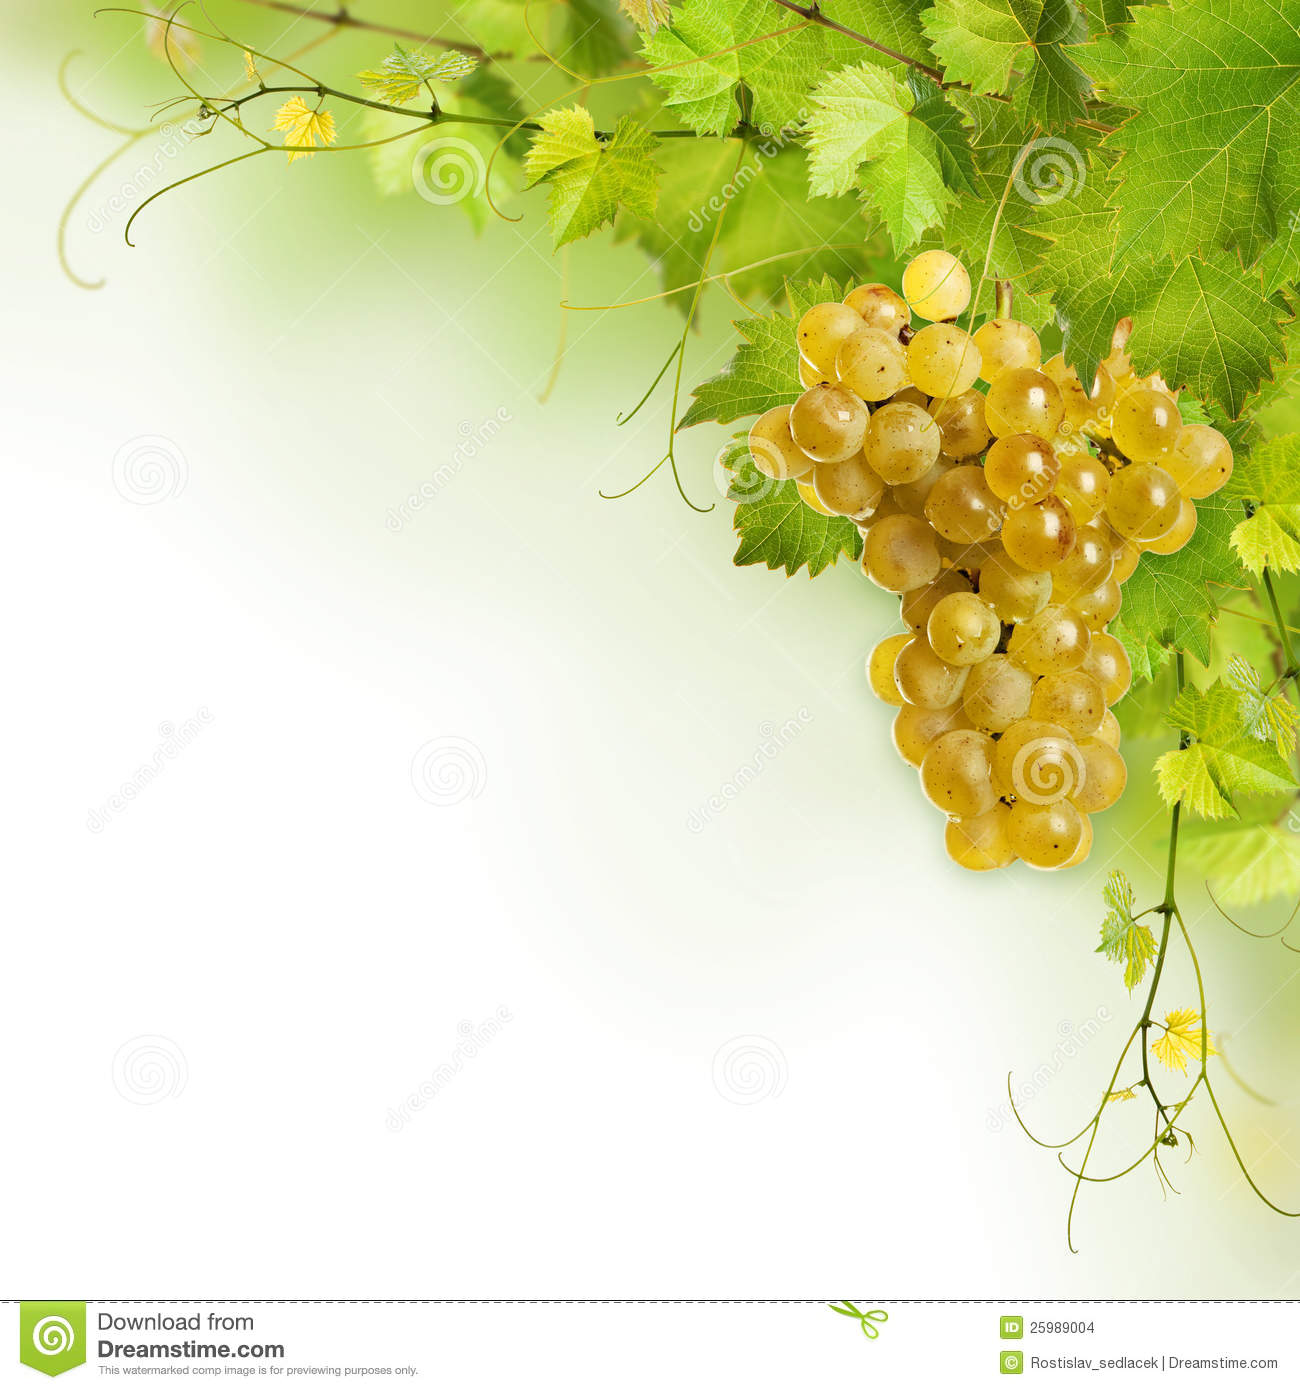 Botanical Print Wallpaper Collage Of Vine Leaves And Yellow Grape Stock Photo